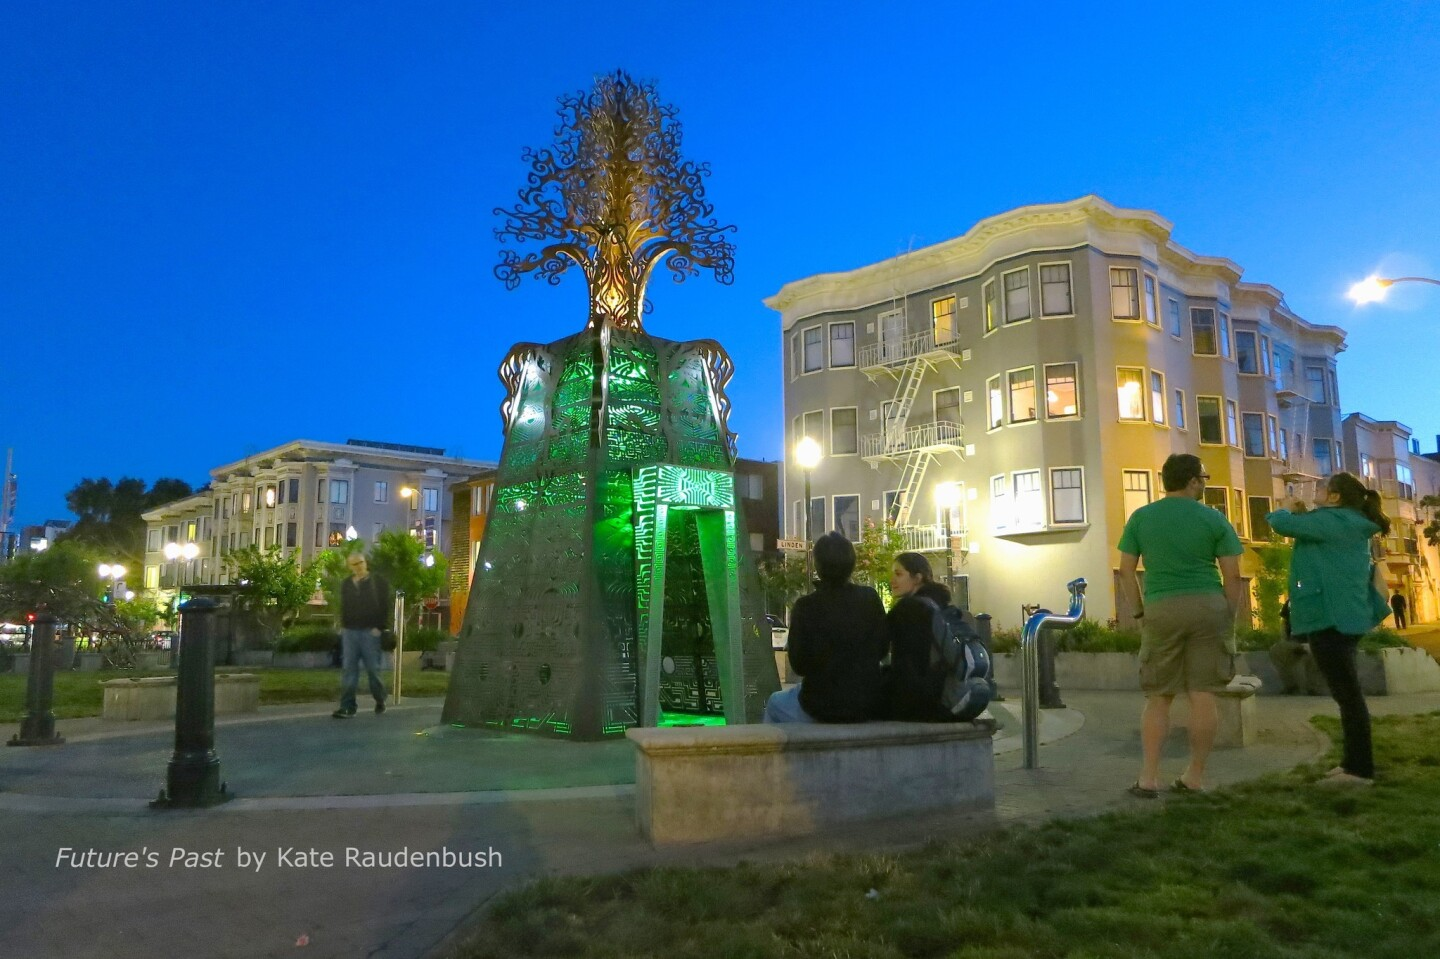 """In Hayes Valley: """"Future's Past,"""" by Kate Raudenbush. This temporary work, at Octavia and Hayes streets, was first shown at Burning Man in 2010. It stands 24 feet tall, is made of metal and has green lighting at night."""